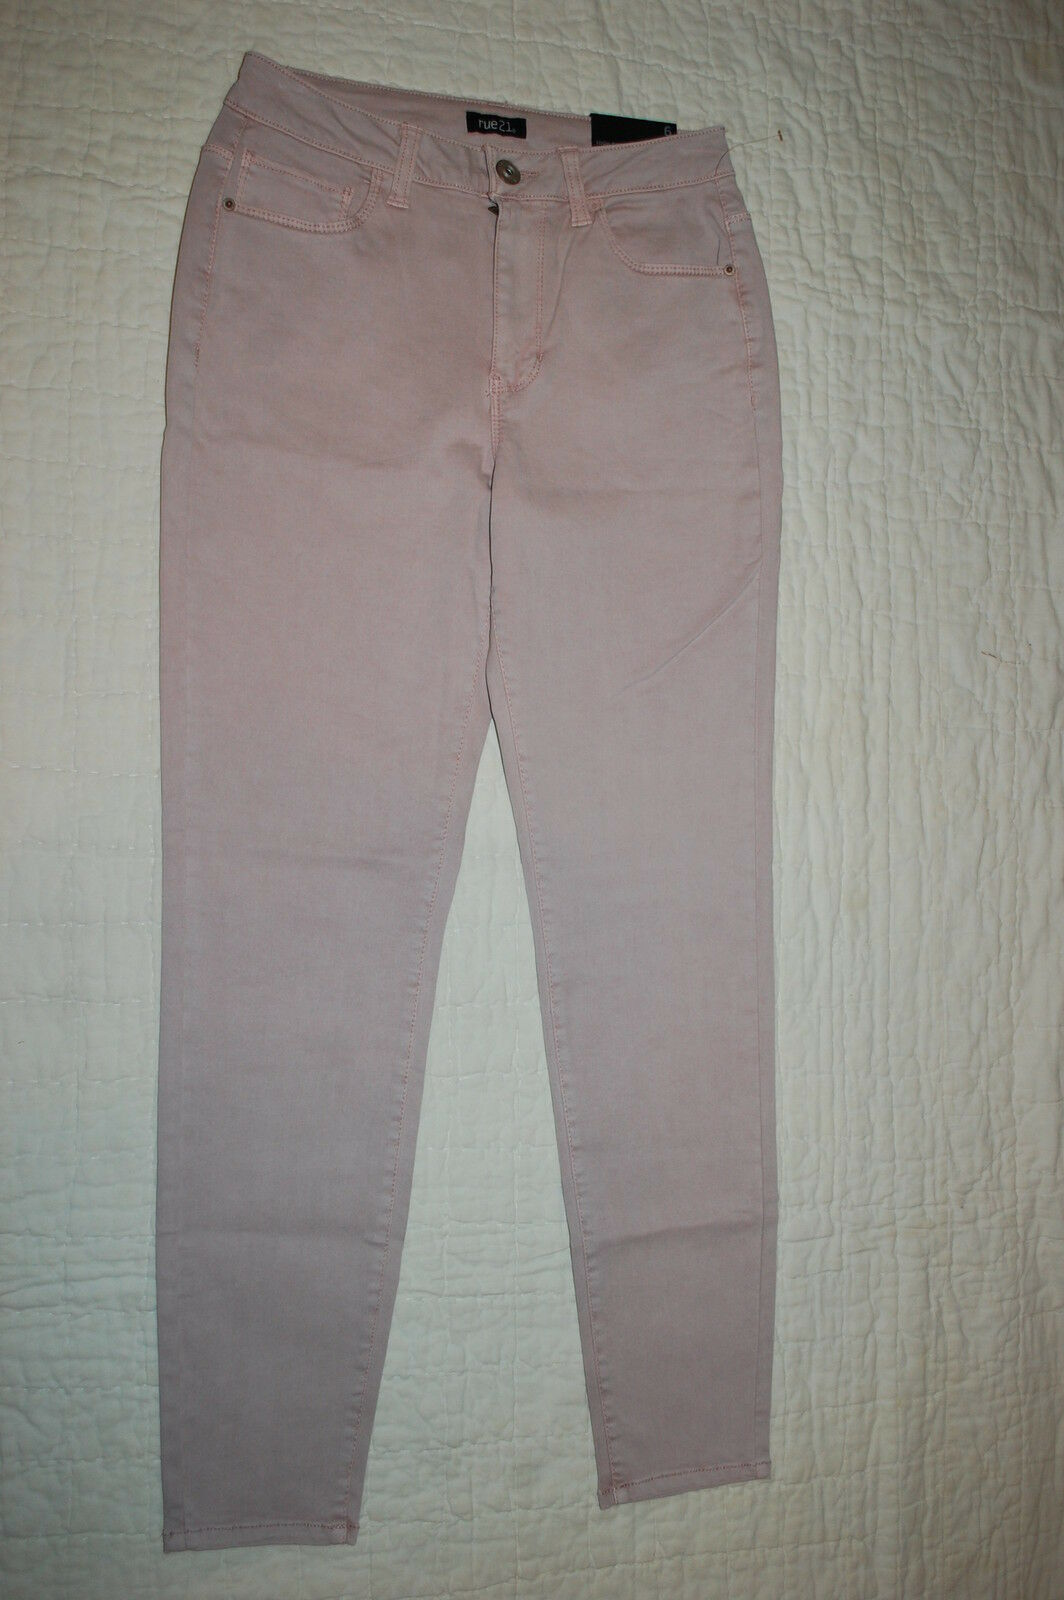 Womens Jeans LIGHT PINK ANKLE JEGGINGS High Waisted COTTON TWILL STRETCH Sz 10